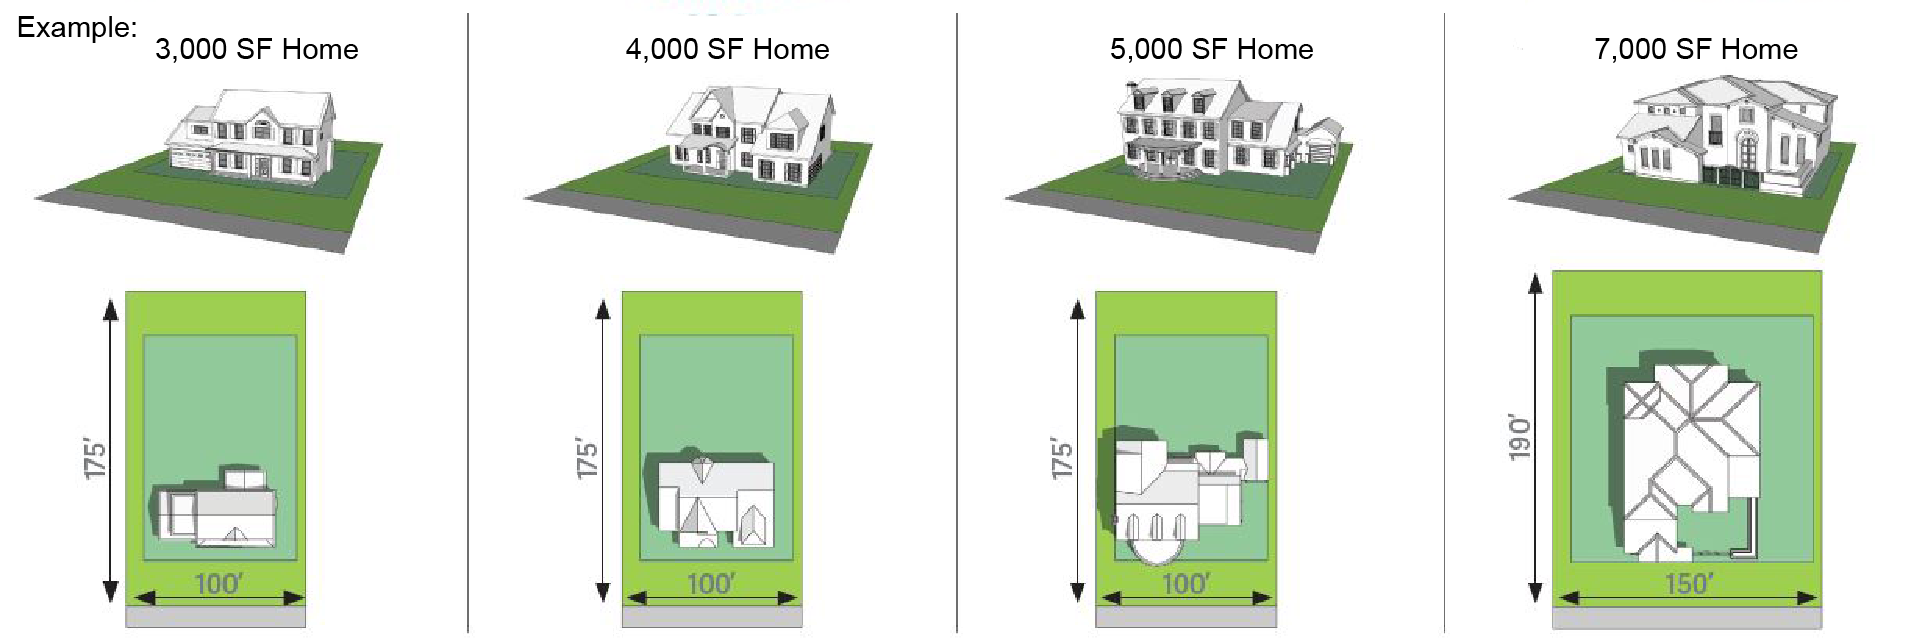 Home sizes 2.0